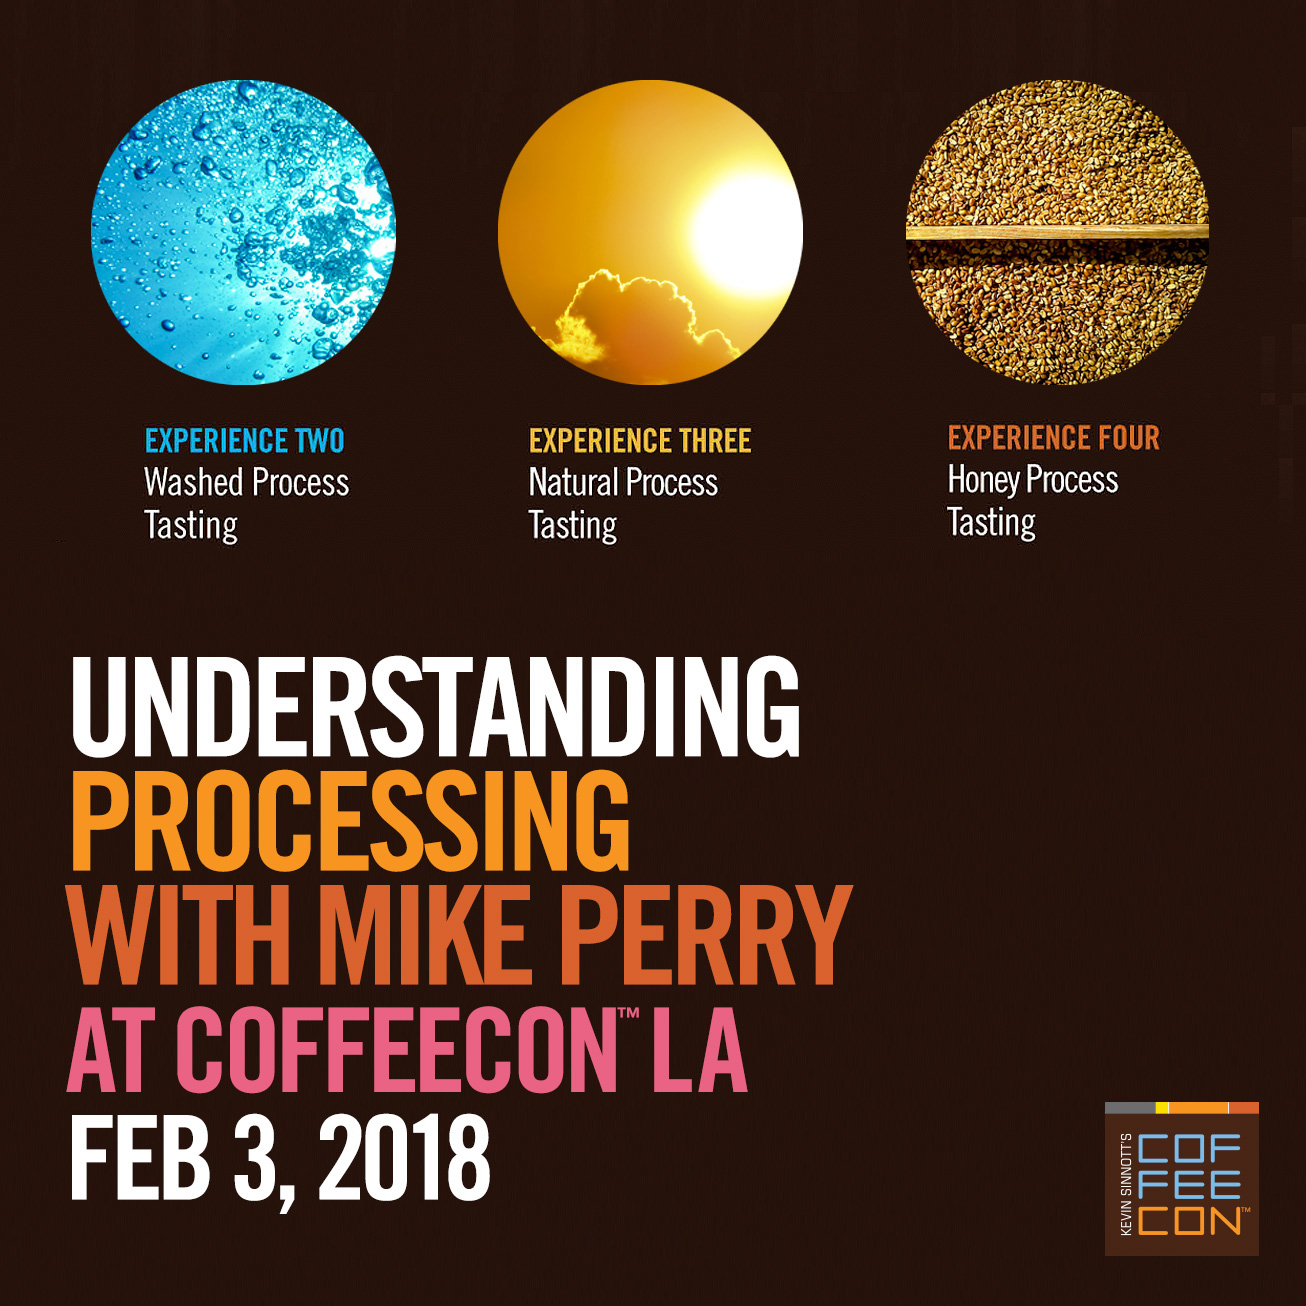 Understanding Processing Methods with Mike Perry